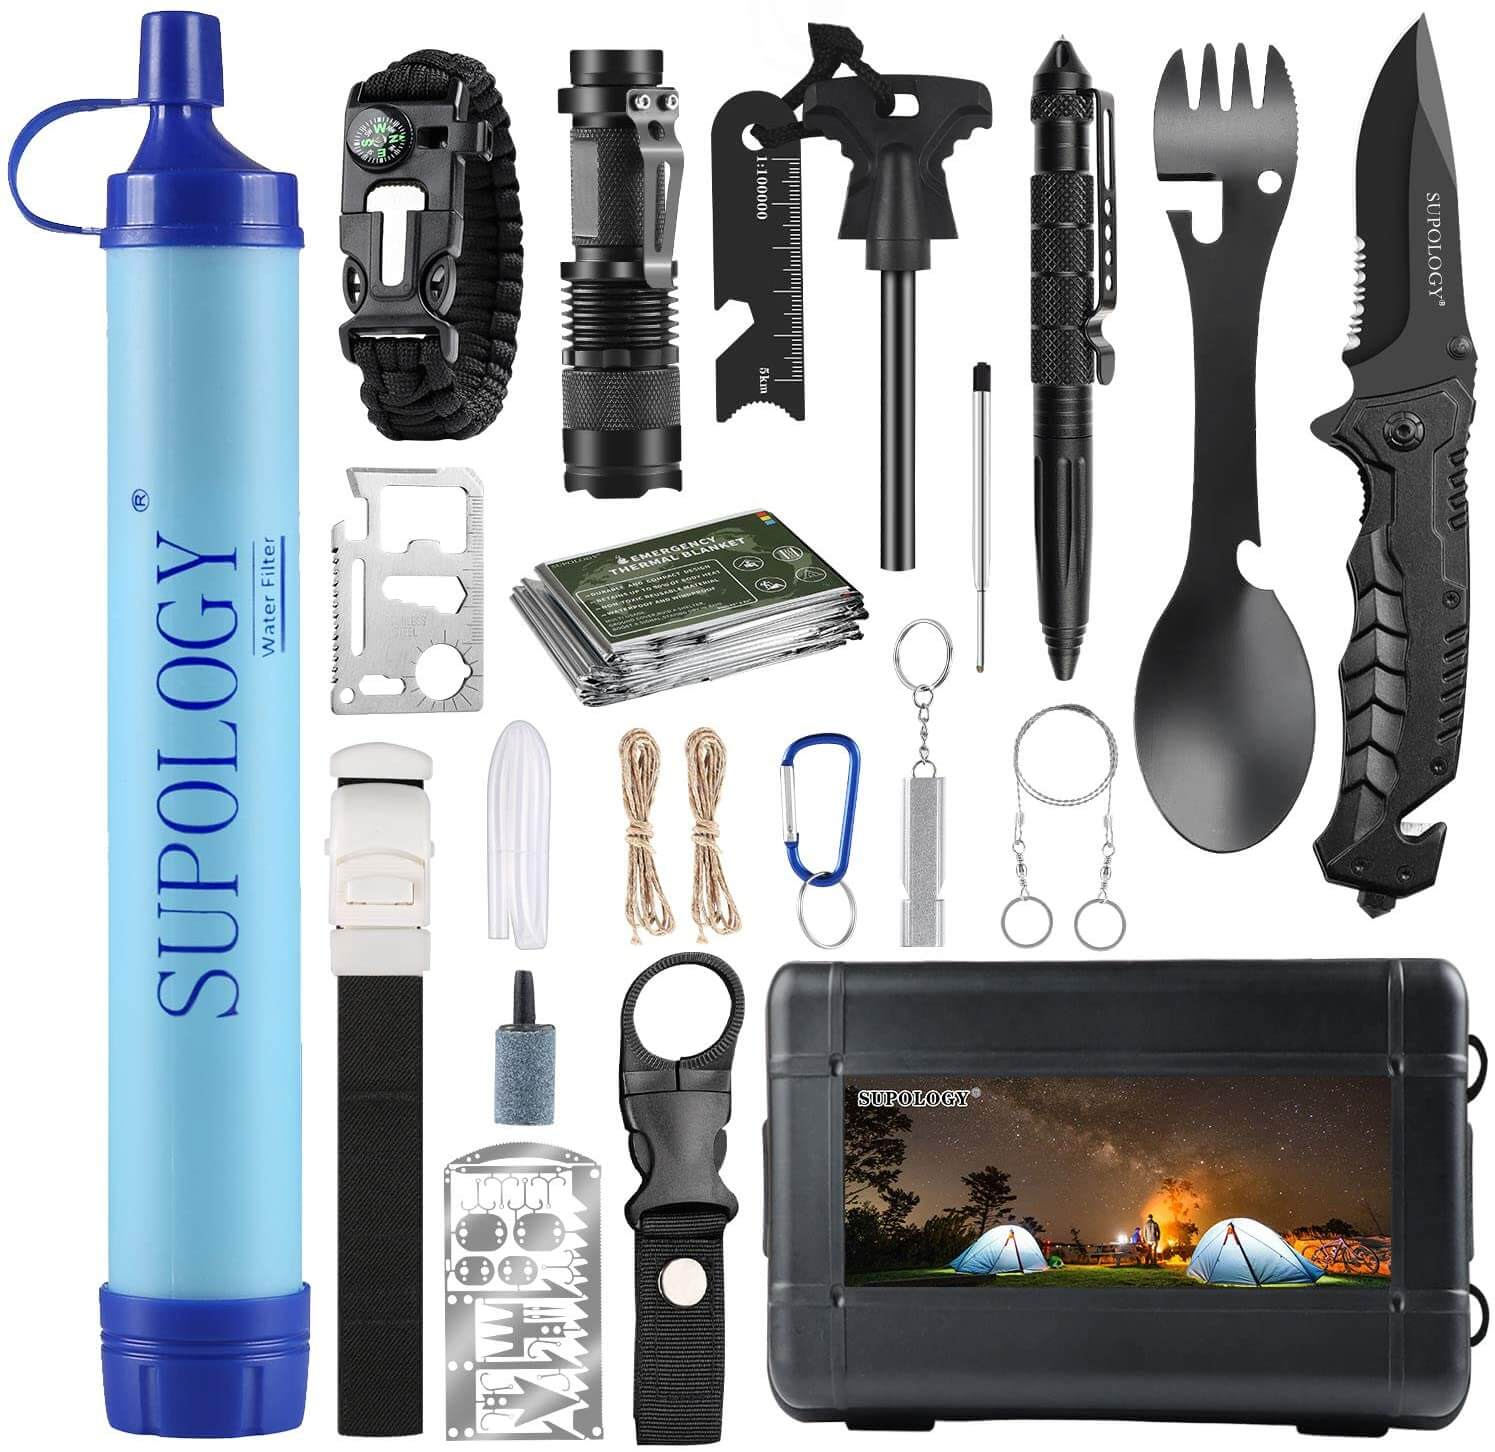 Survival Emergency Kits Gear,